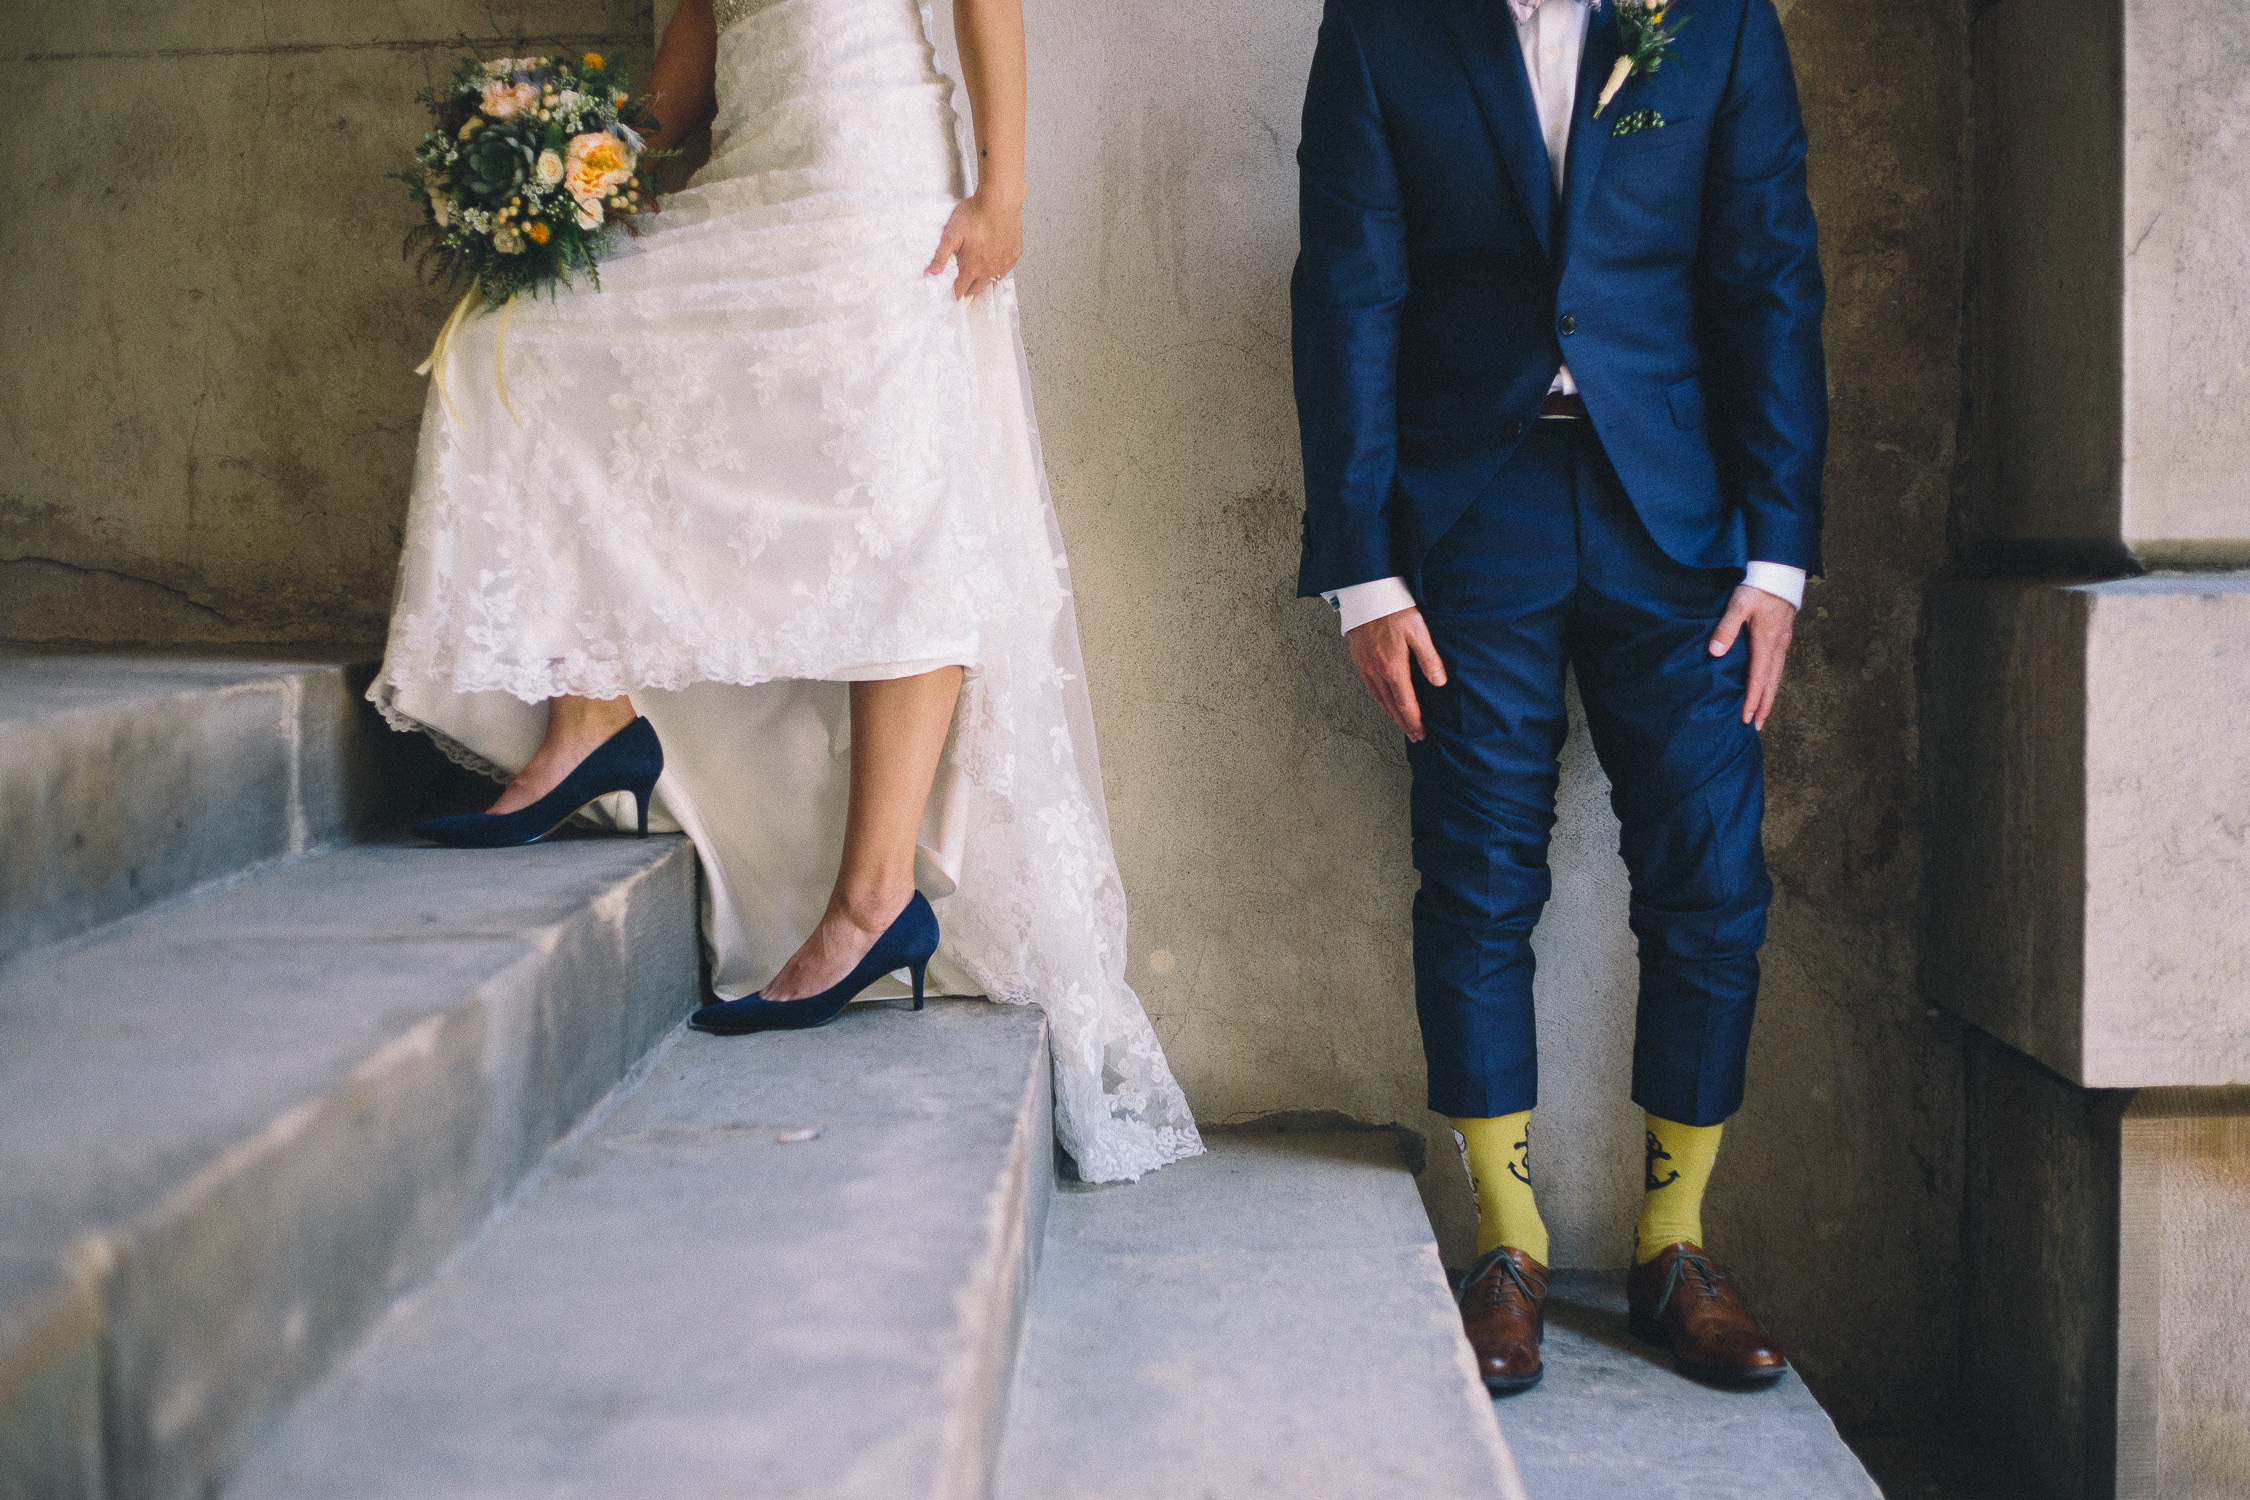 Fun shot of the bride and groom's footwear at Osgoode Hall